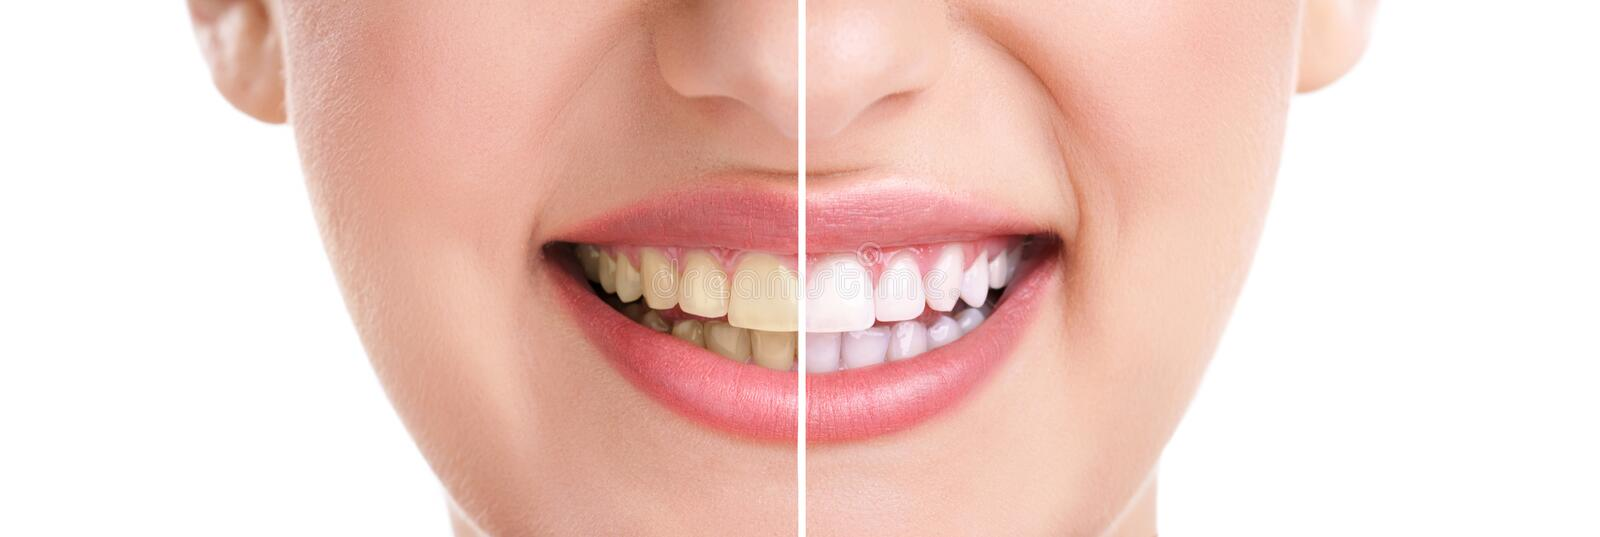 Healthy teeth and smile royalty free stock photo